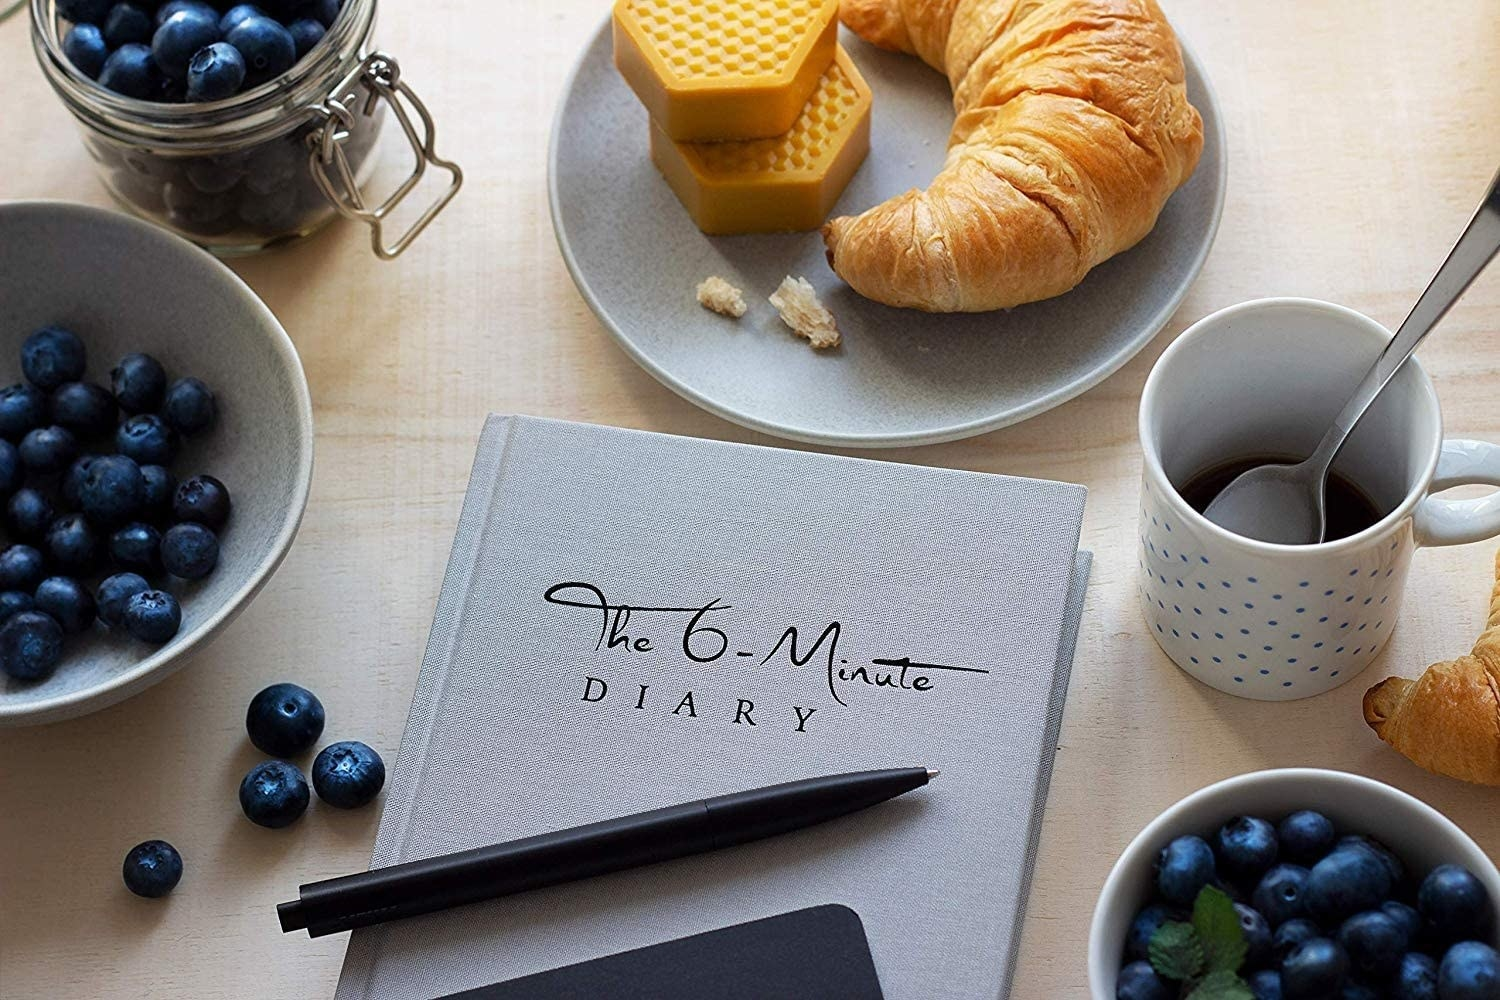 A flatlay of the journal next to a bowl of blueberries and a croissant